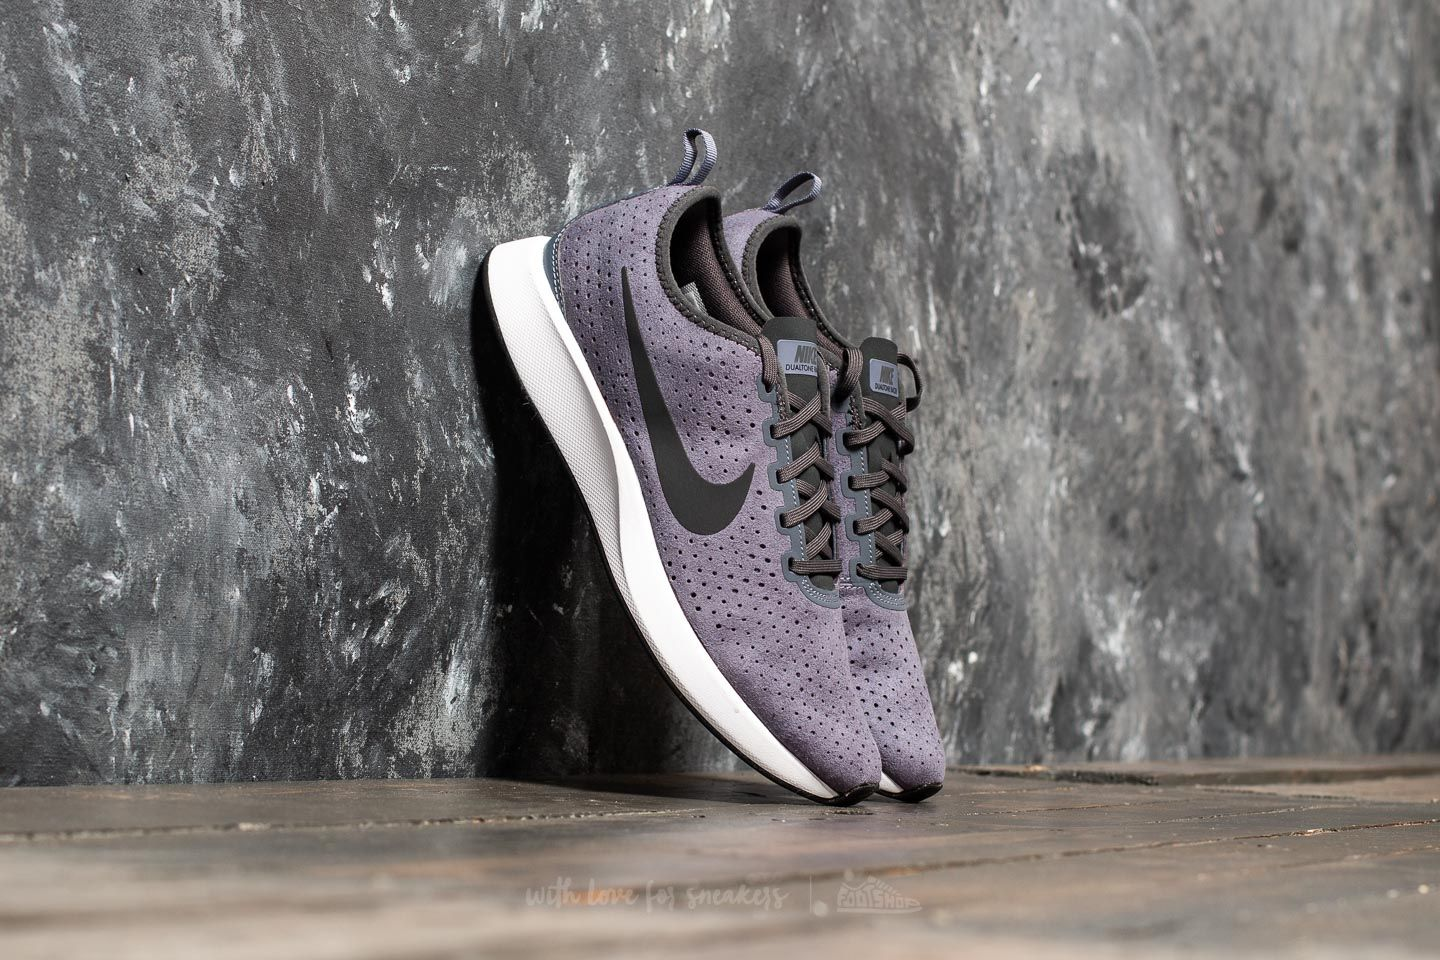 046016ec1056 Nike Dualtone Racer Premium Light Carbon  Anthracite-White